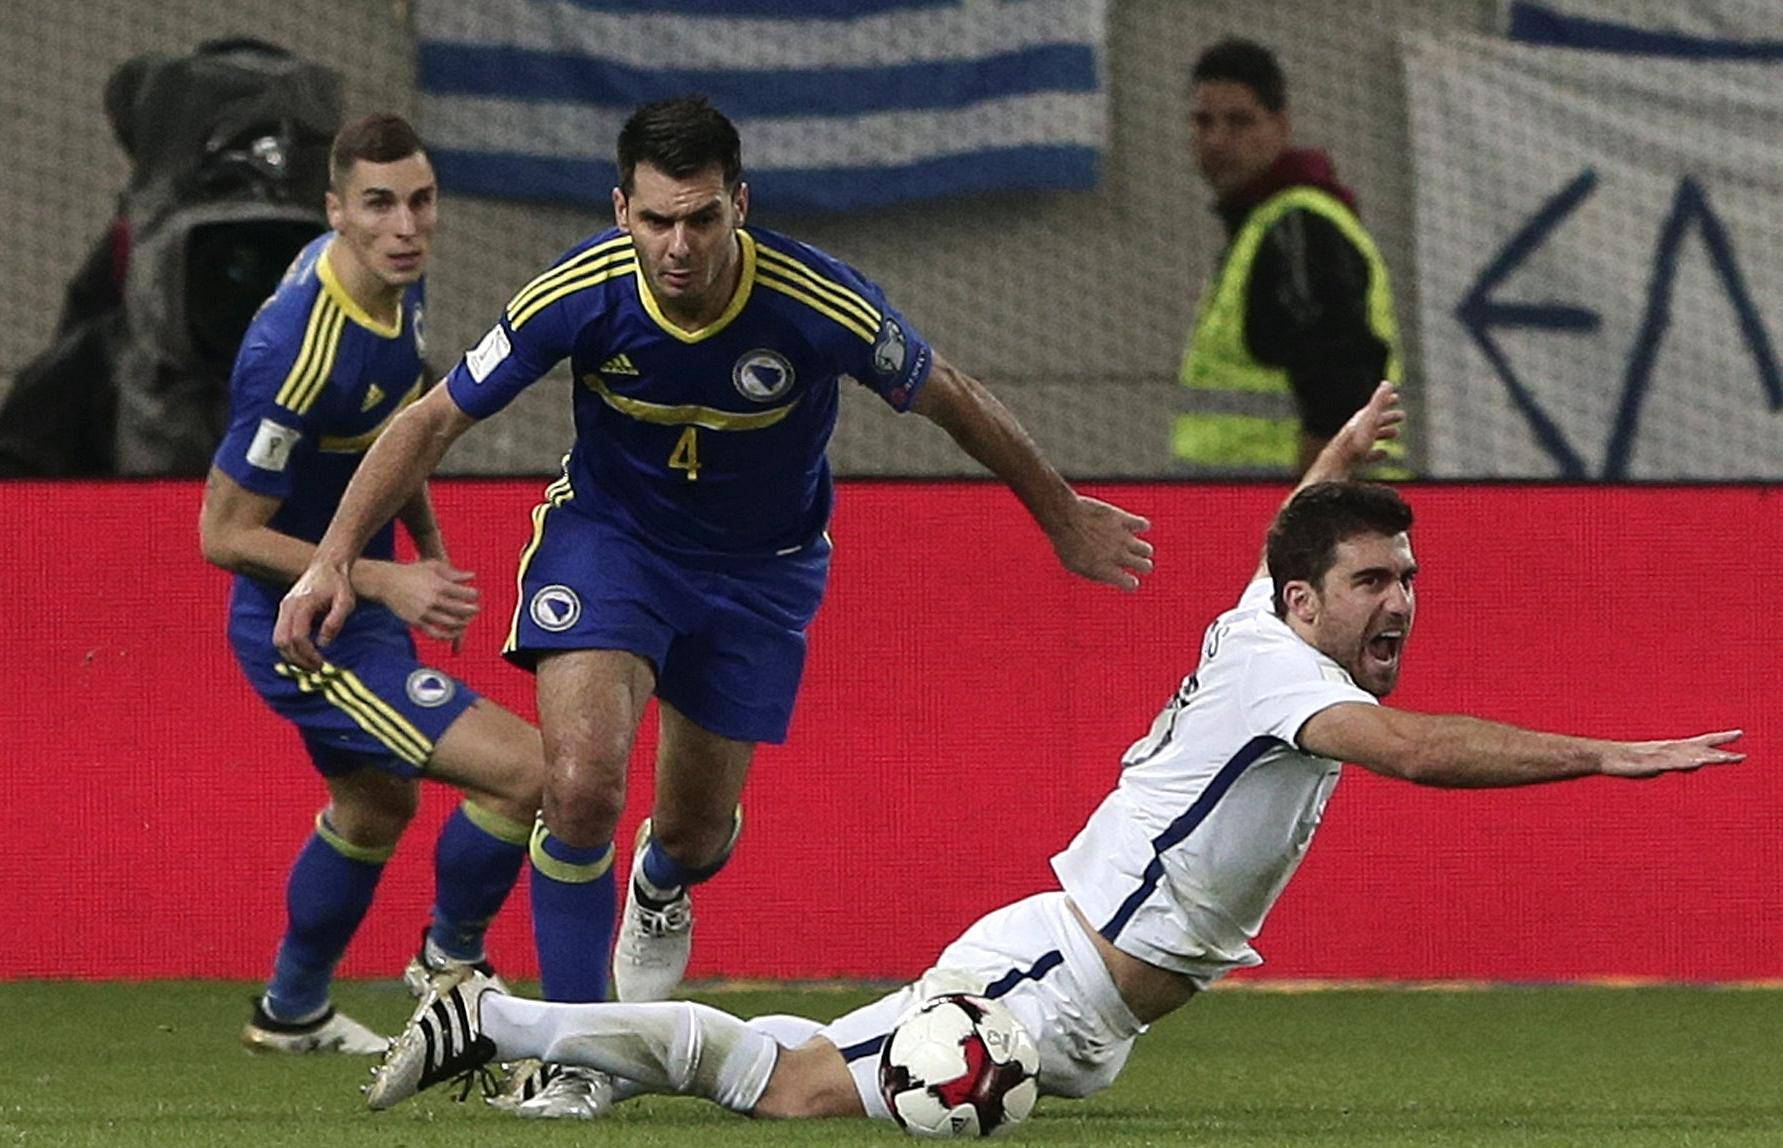 Football Soccer - Greece v Bosnia and Herzegovina - 2018 World Cup Qualifying European Zone